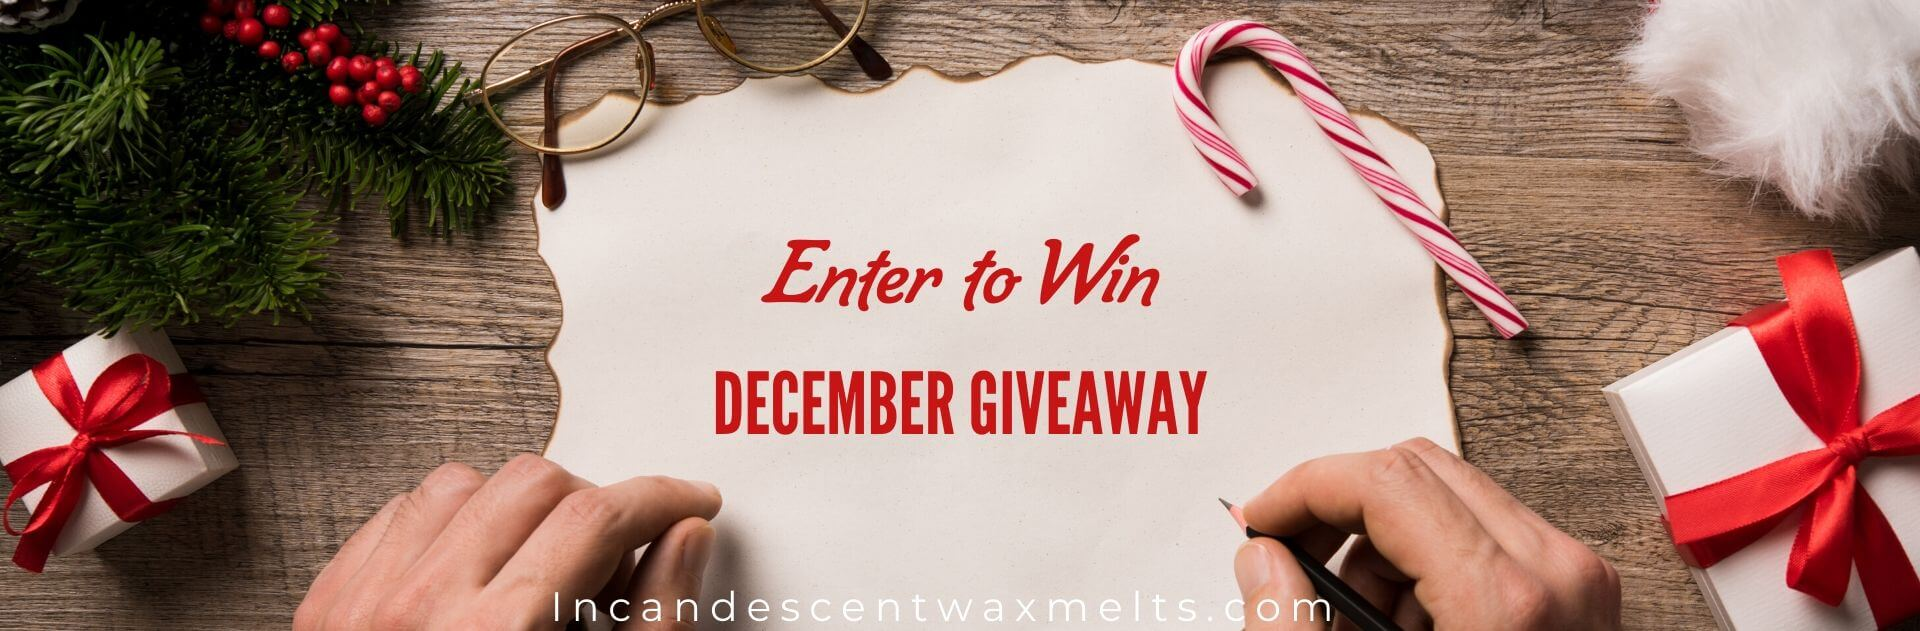 SCENTSY DECEMBER 2019 GIVEAWAY